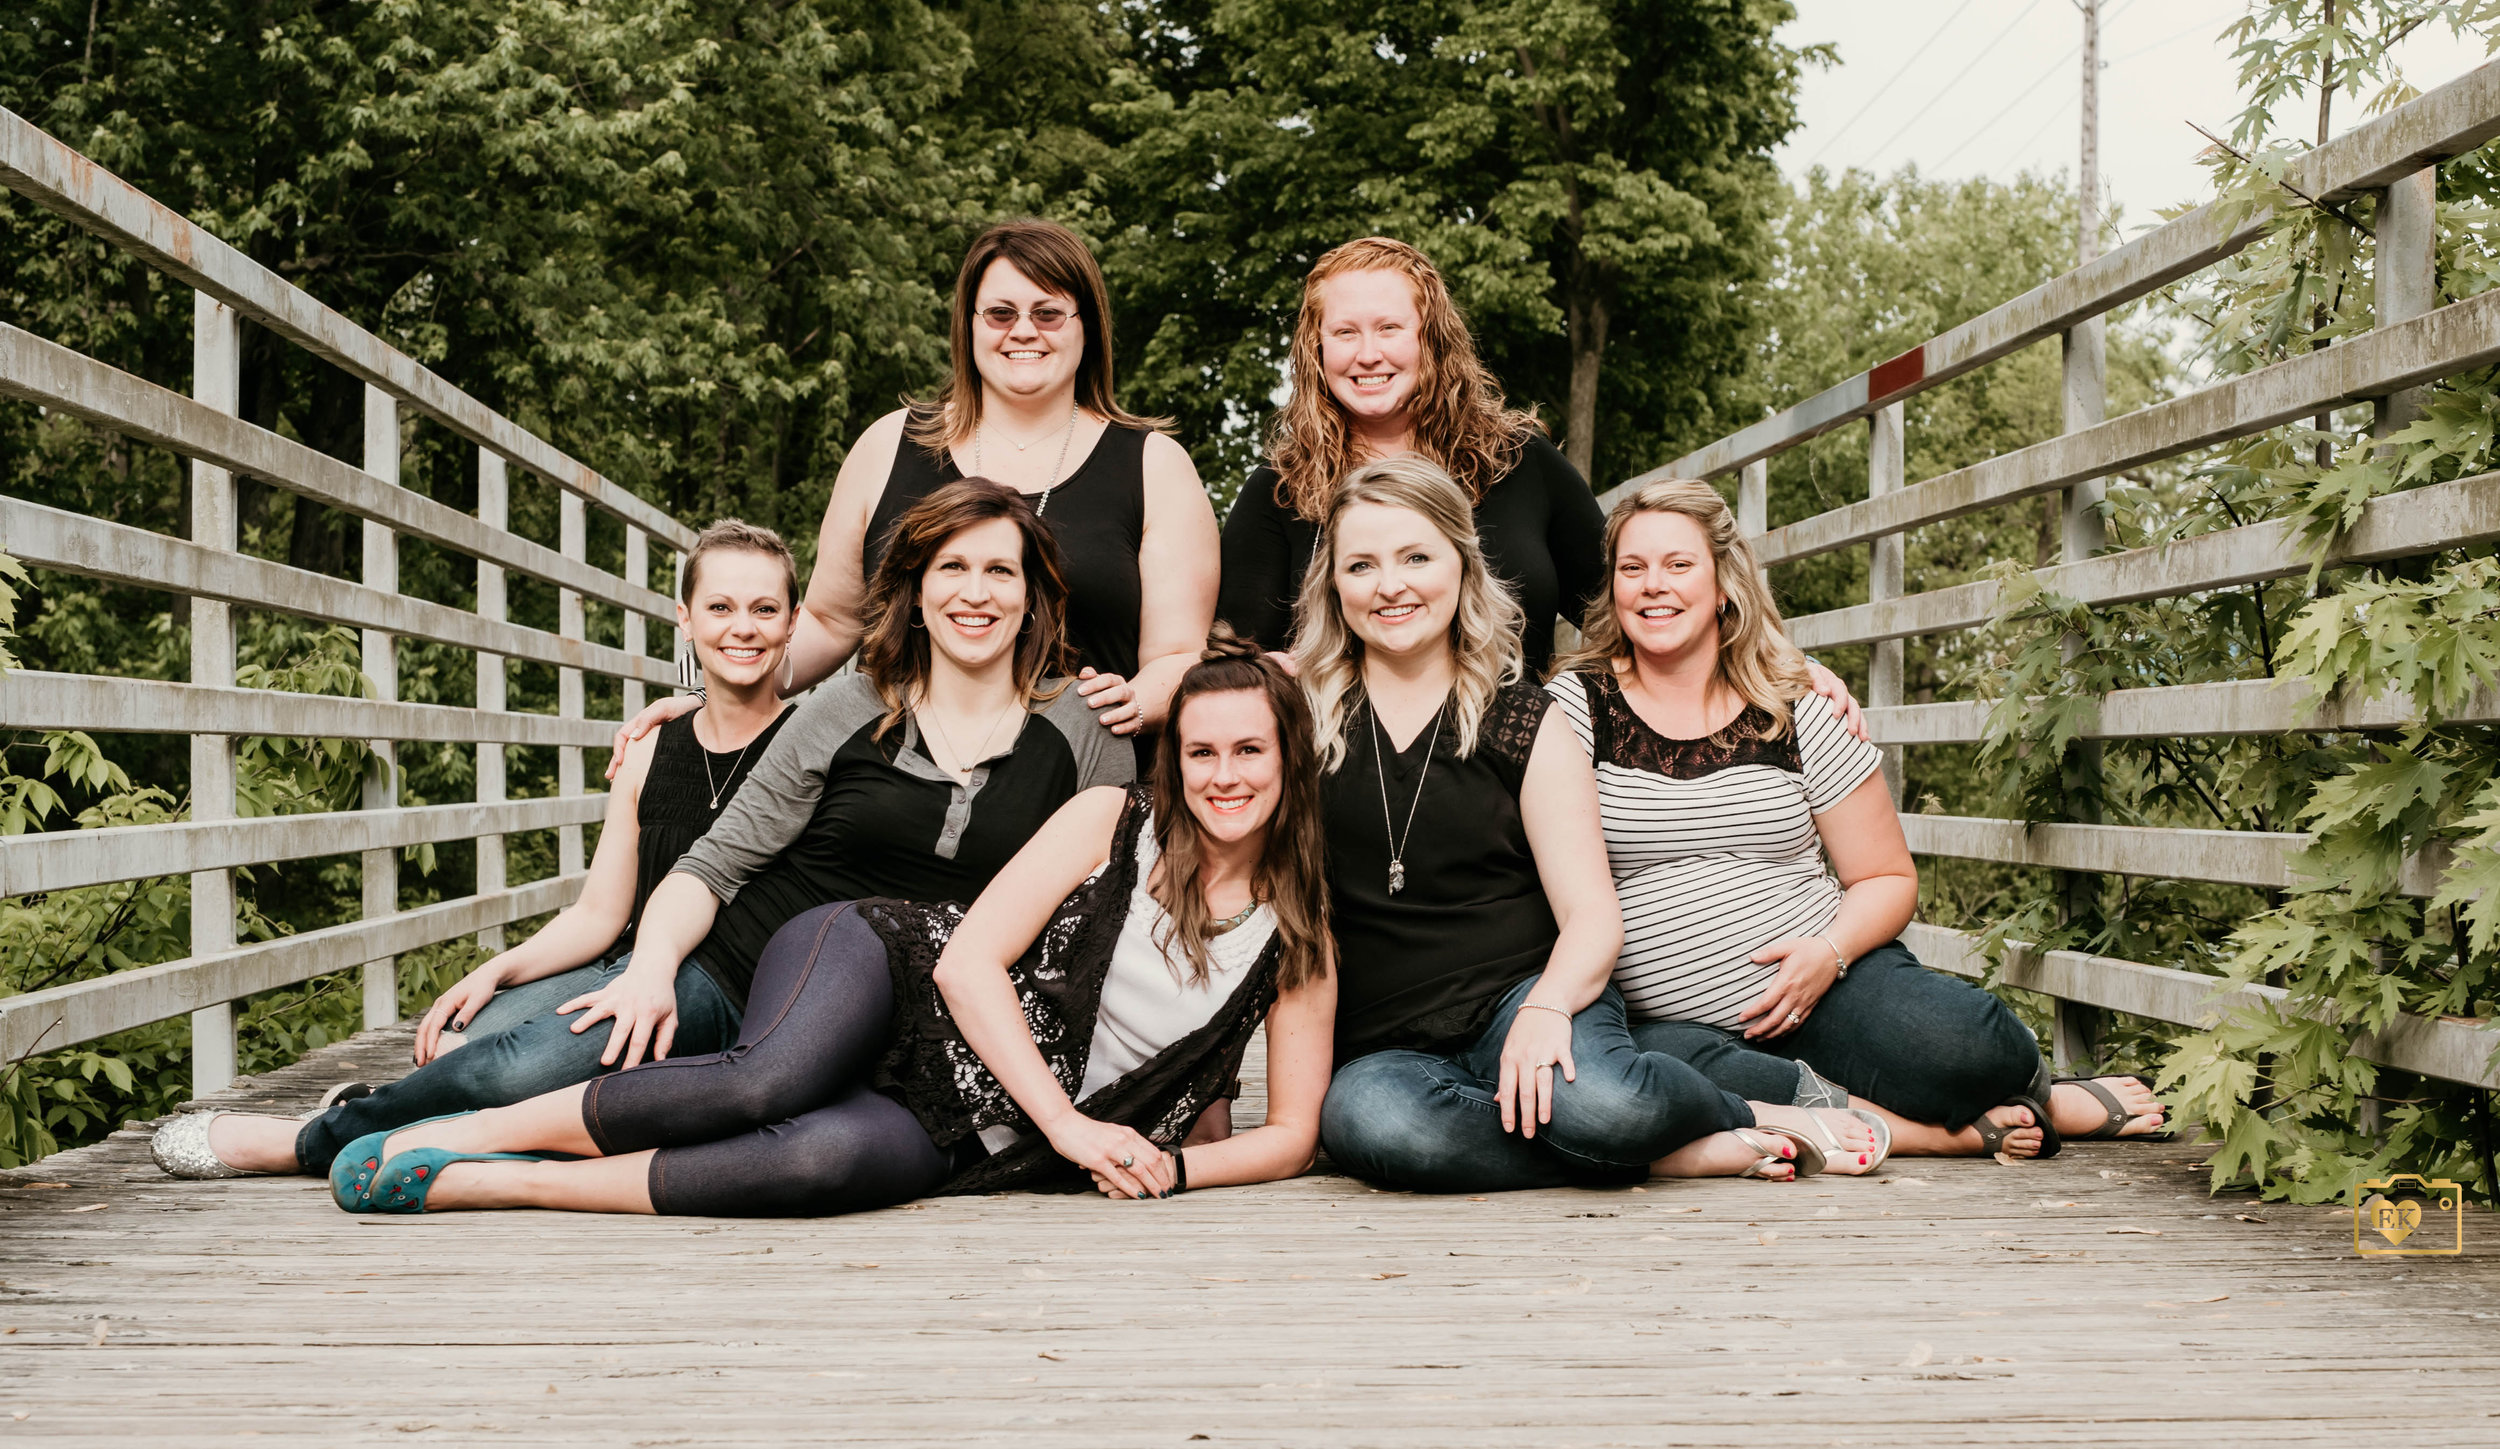 Pictured back row on the left is Ashley.